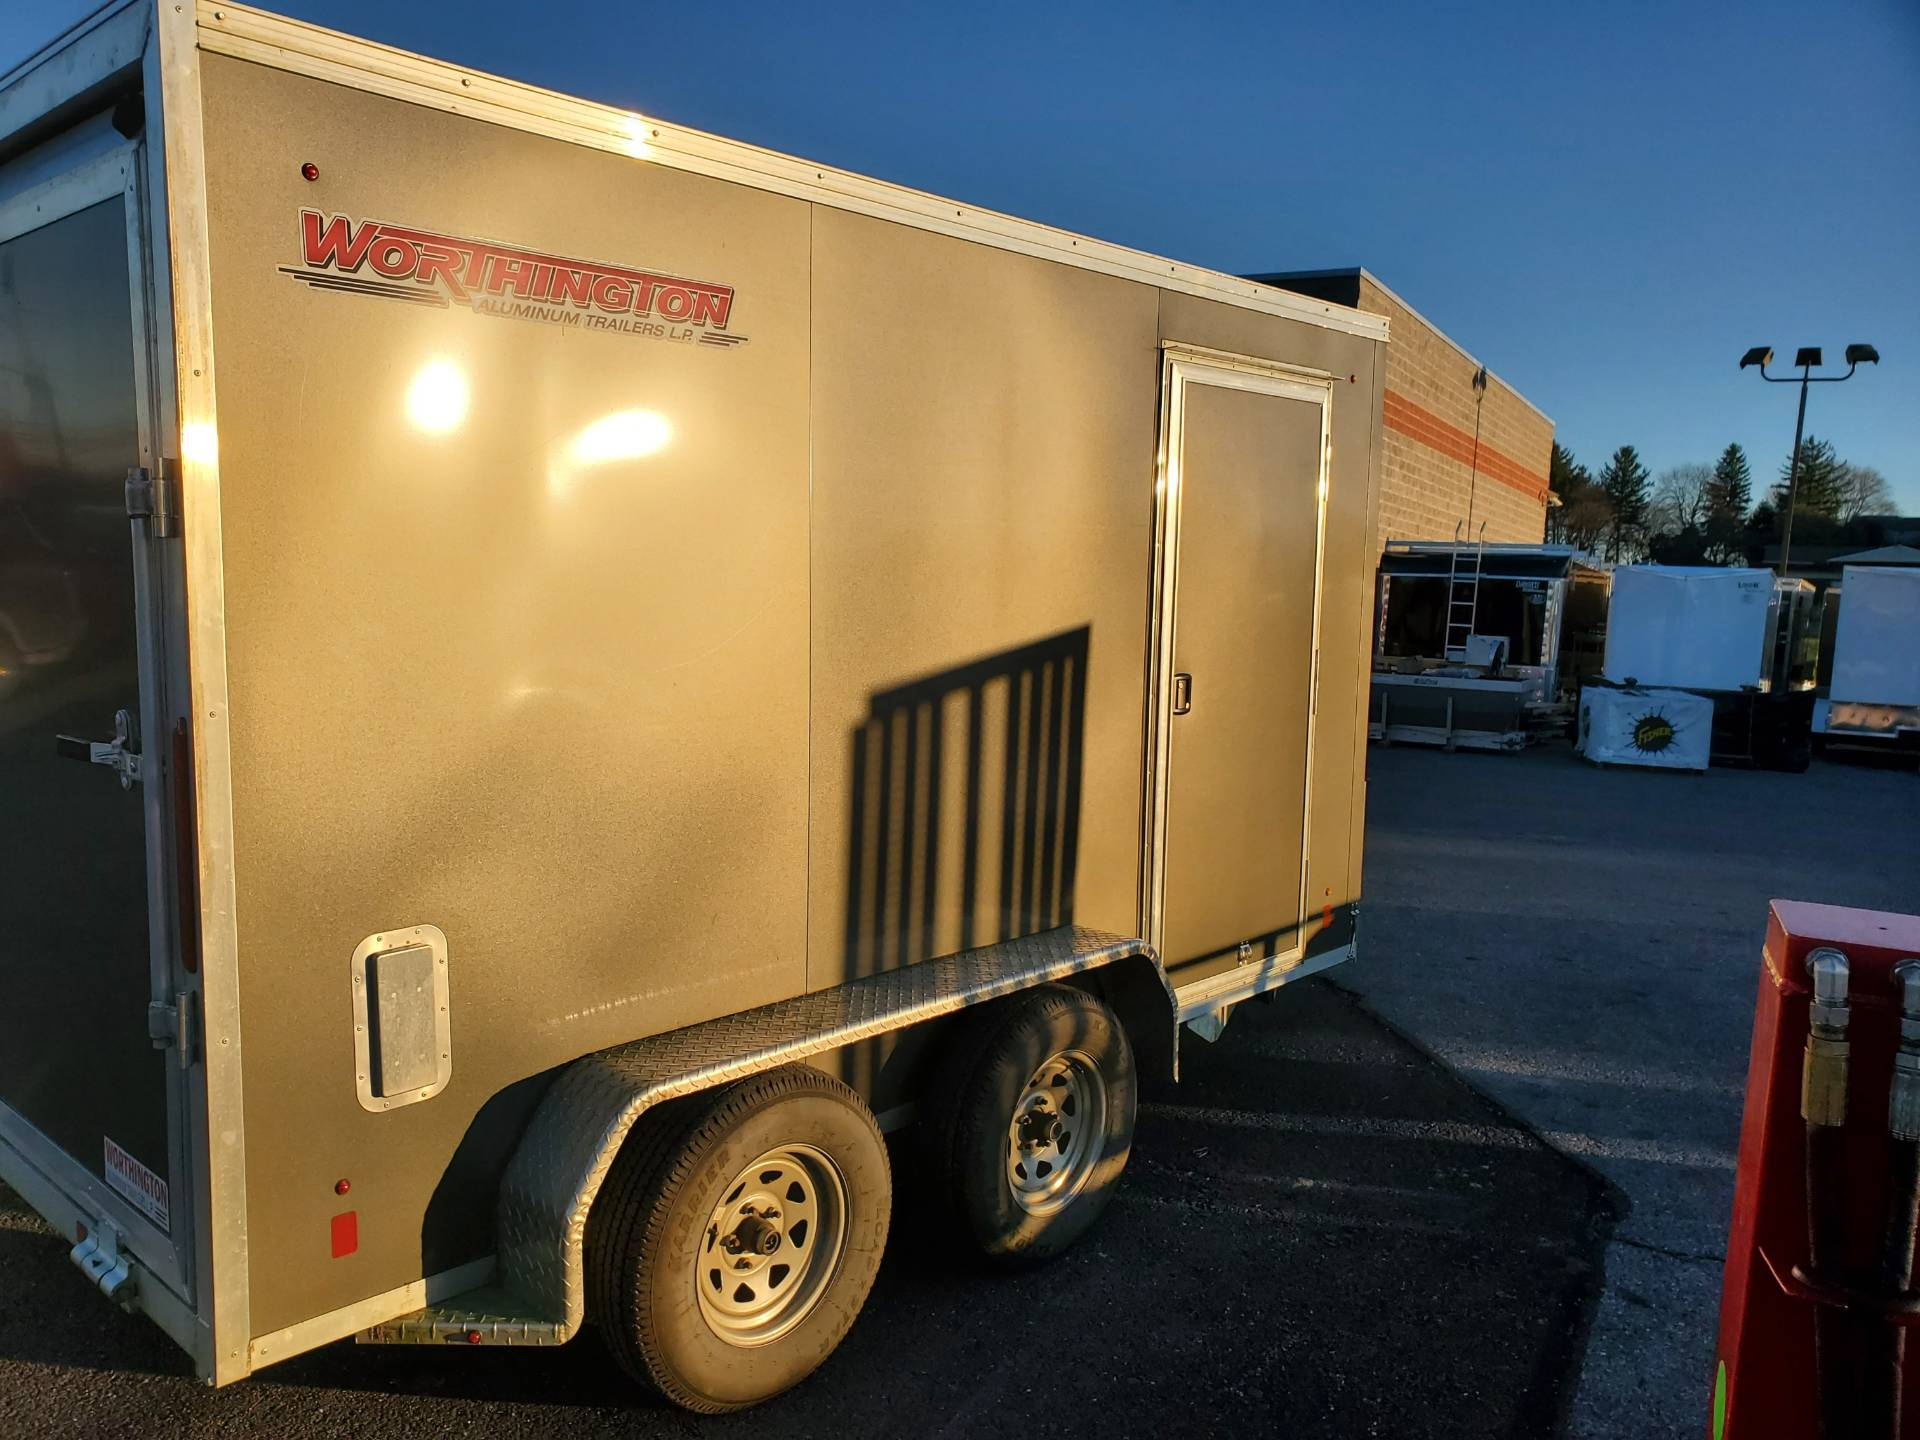 2016 USED UNITS Used Worthington 7x12 Aluminum Cargo Trailer in Harrisburg, Pennsylvania - Photo 8